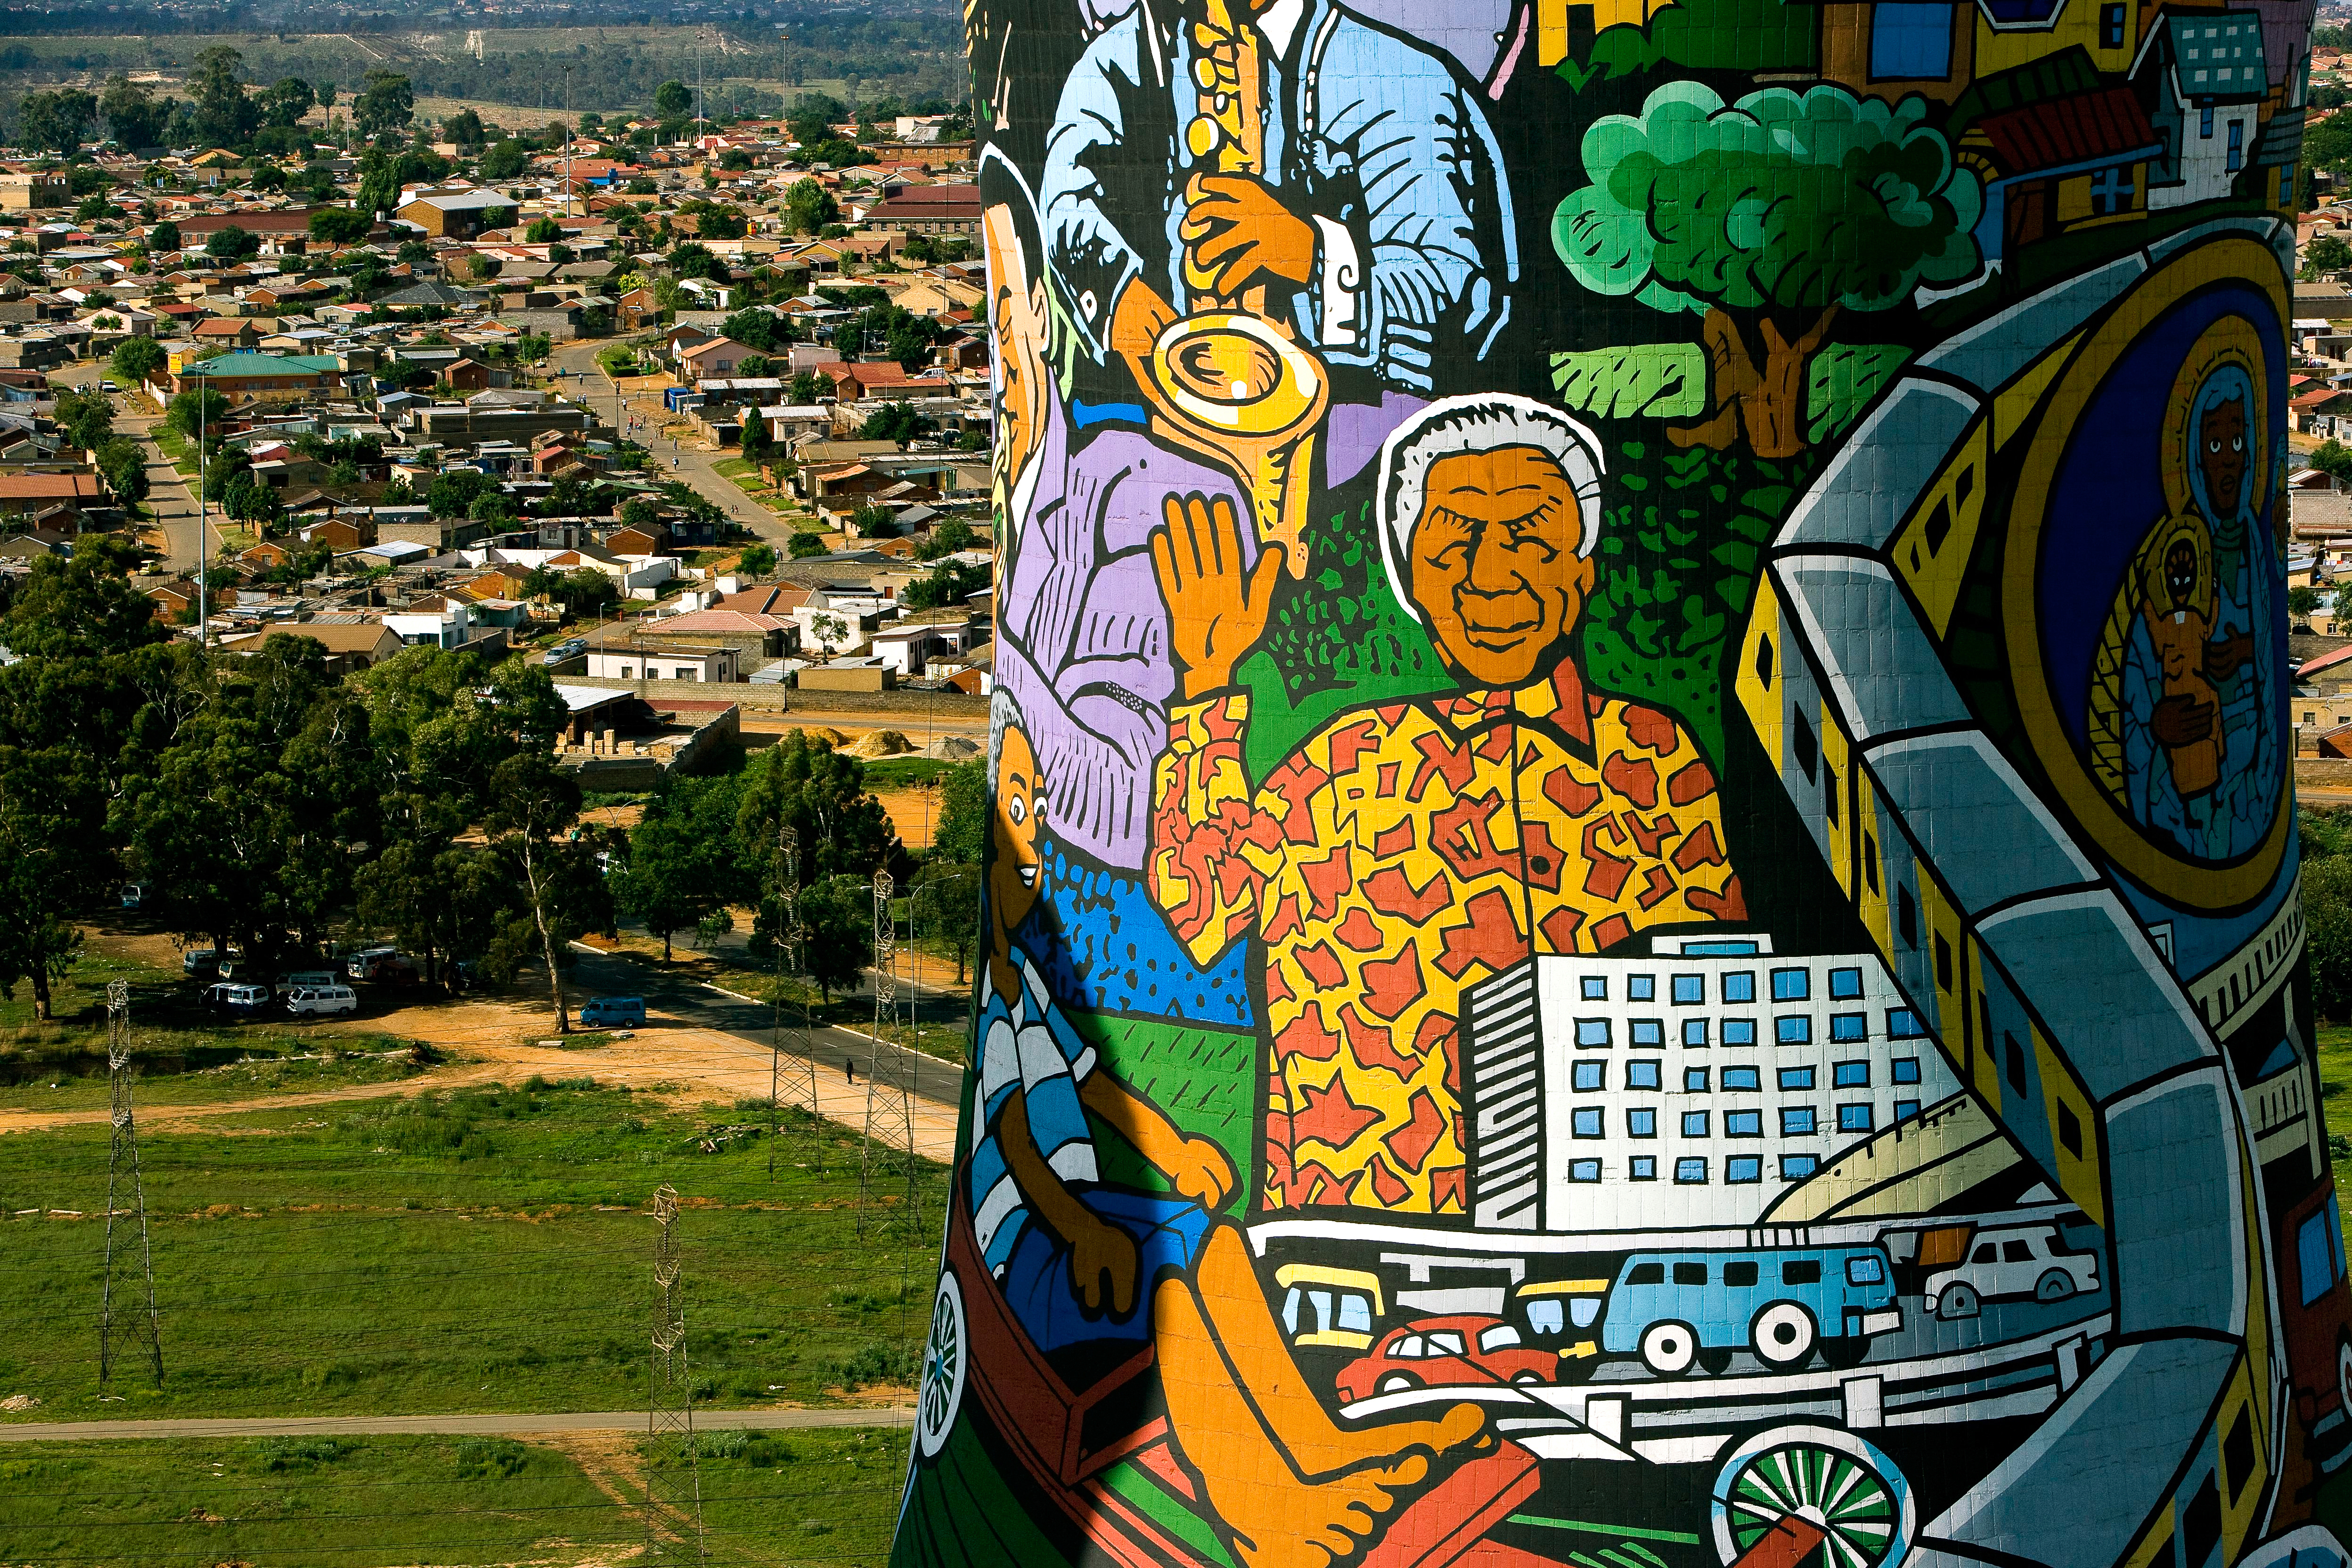 Portrait of Nelson Mandela on a cooling tower of the Orlando Power Plant in Soweto, City of Johannesburg, Gauteng province, South Africa. (Photo by Yann Arthus-Bertrand via Getty Images)